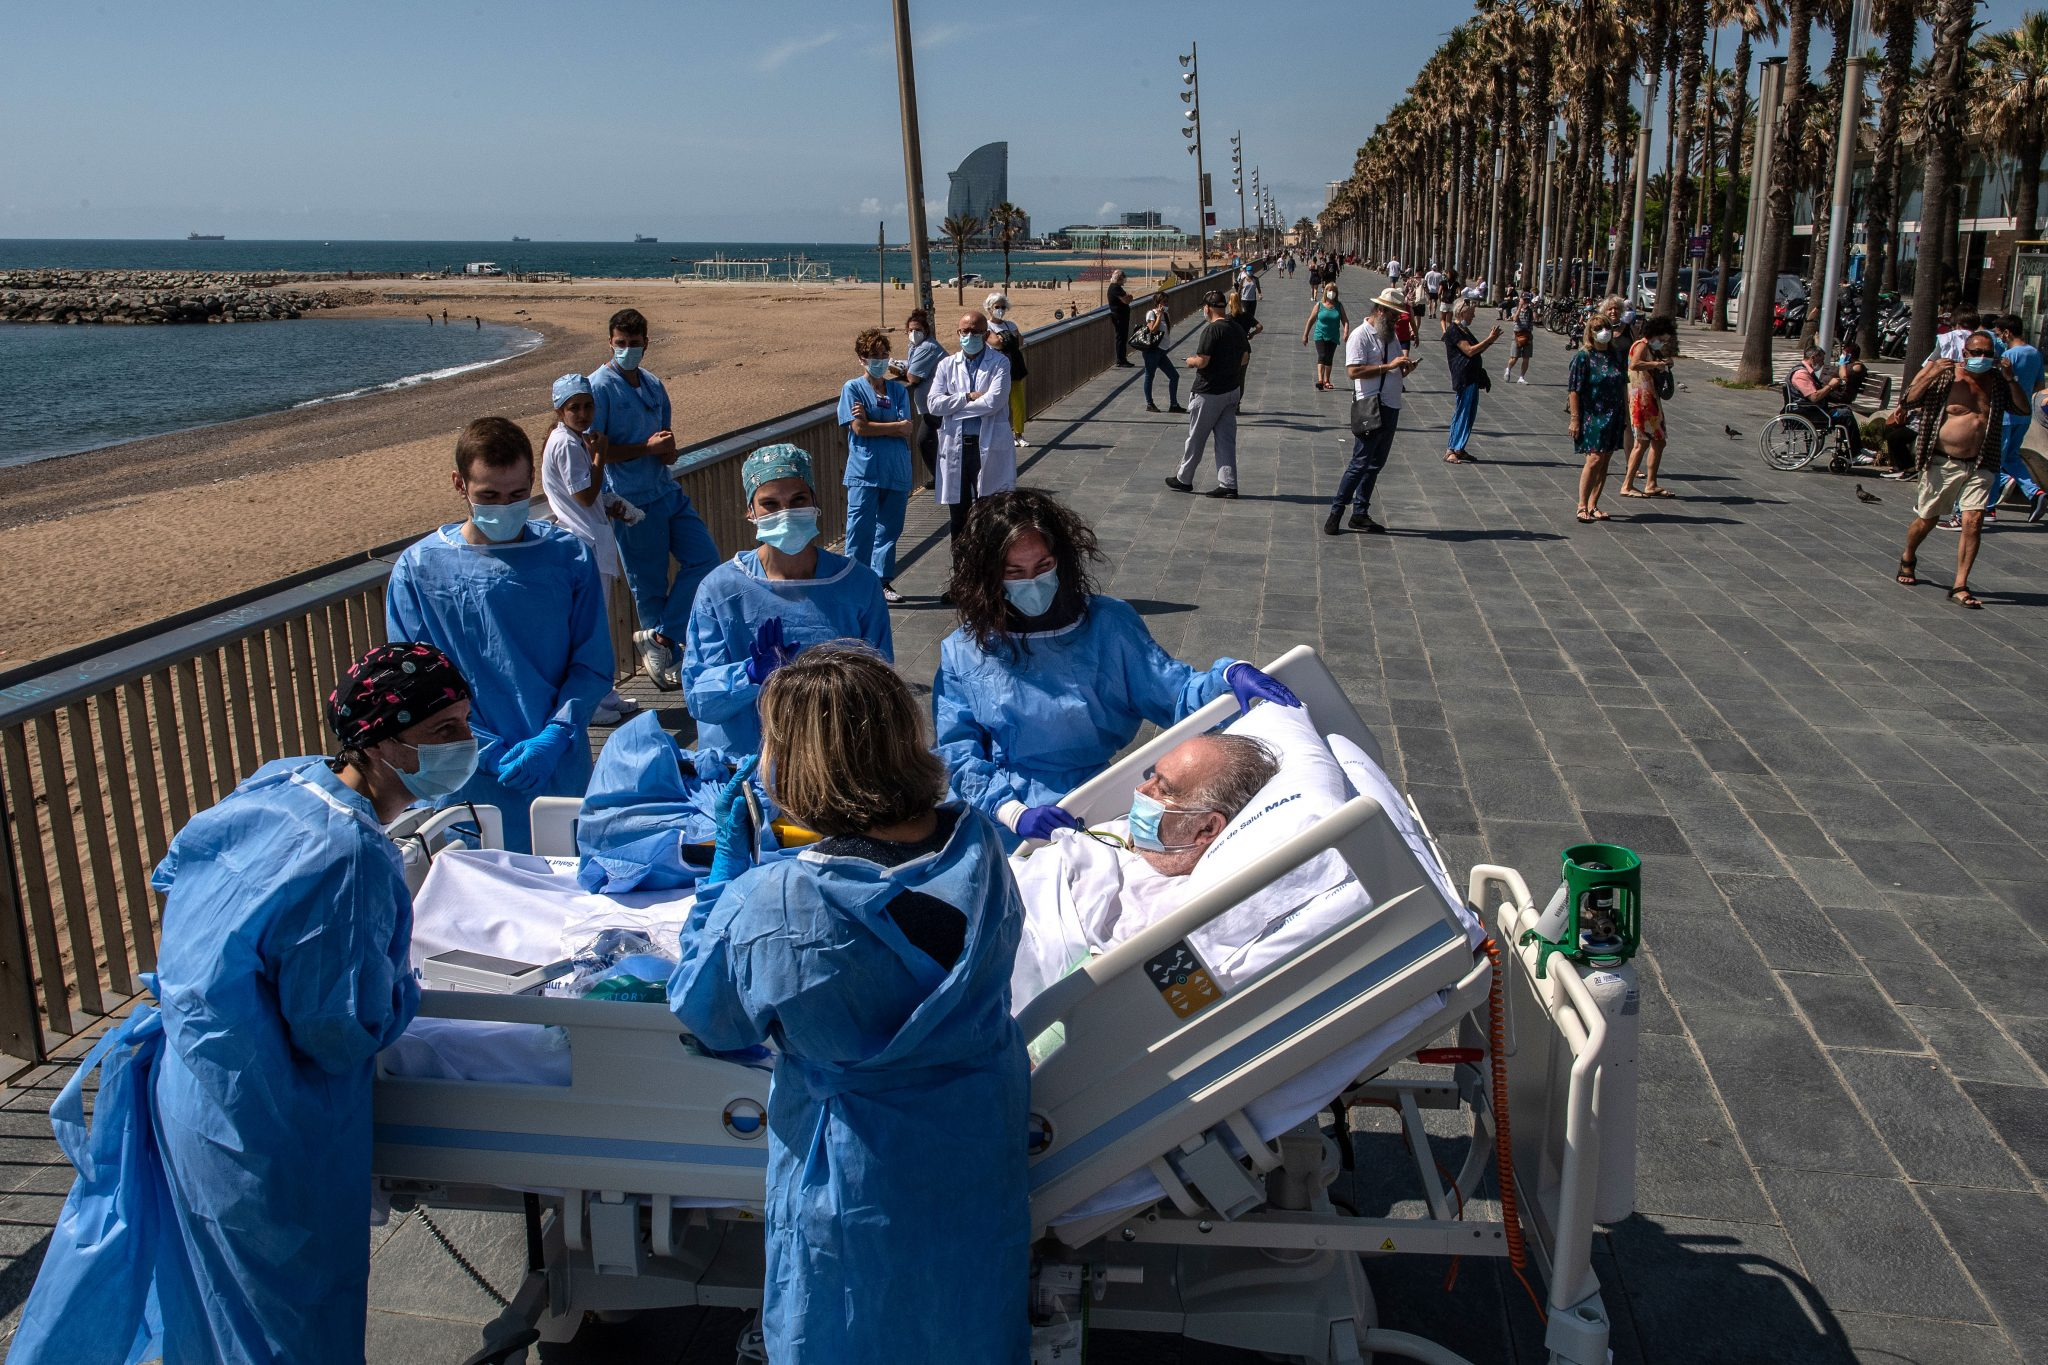 A patient recovering from coronavirus at Barcelona hospital is taken by doctors to the beach